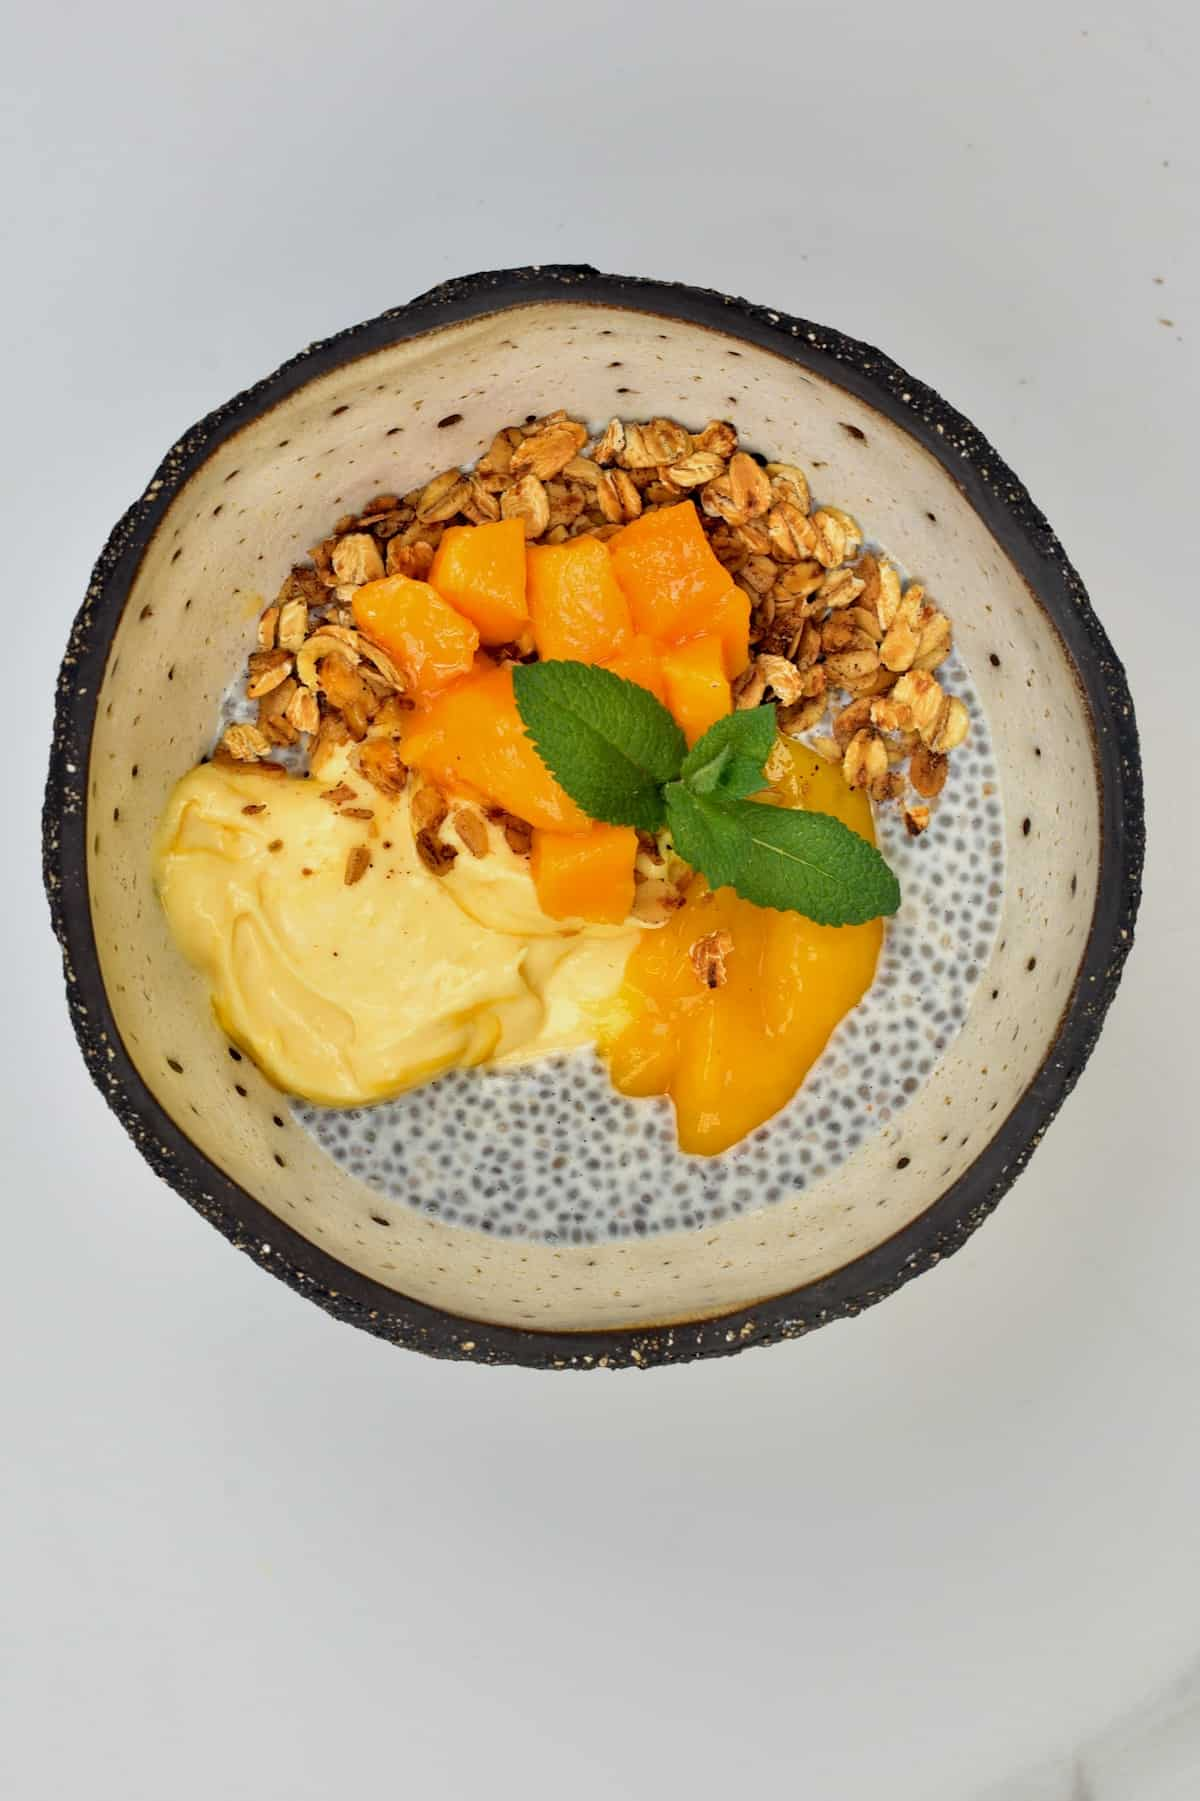 Mango breakfast topped with mint leaves